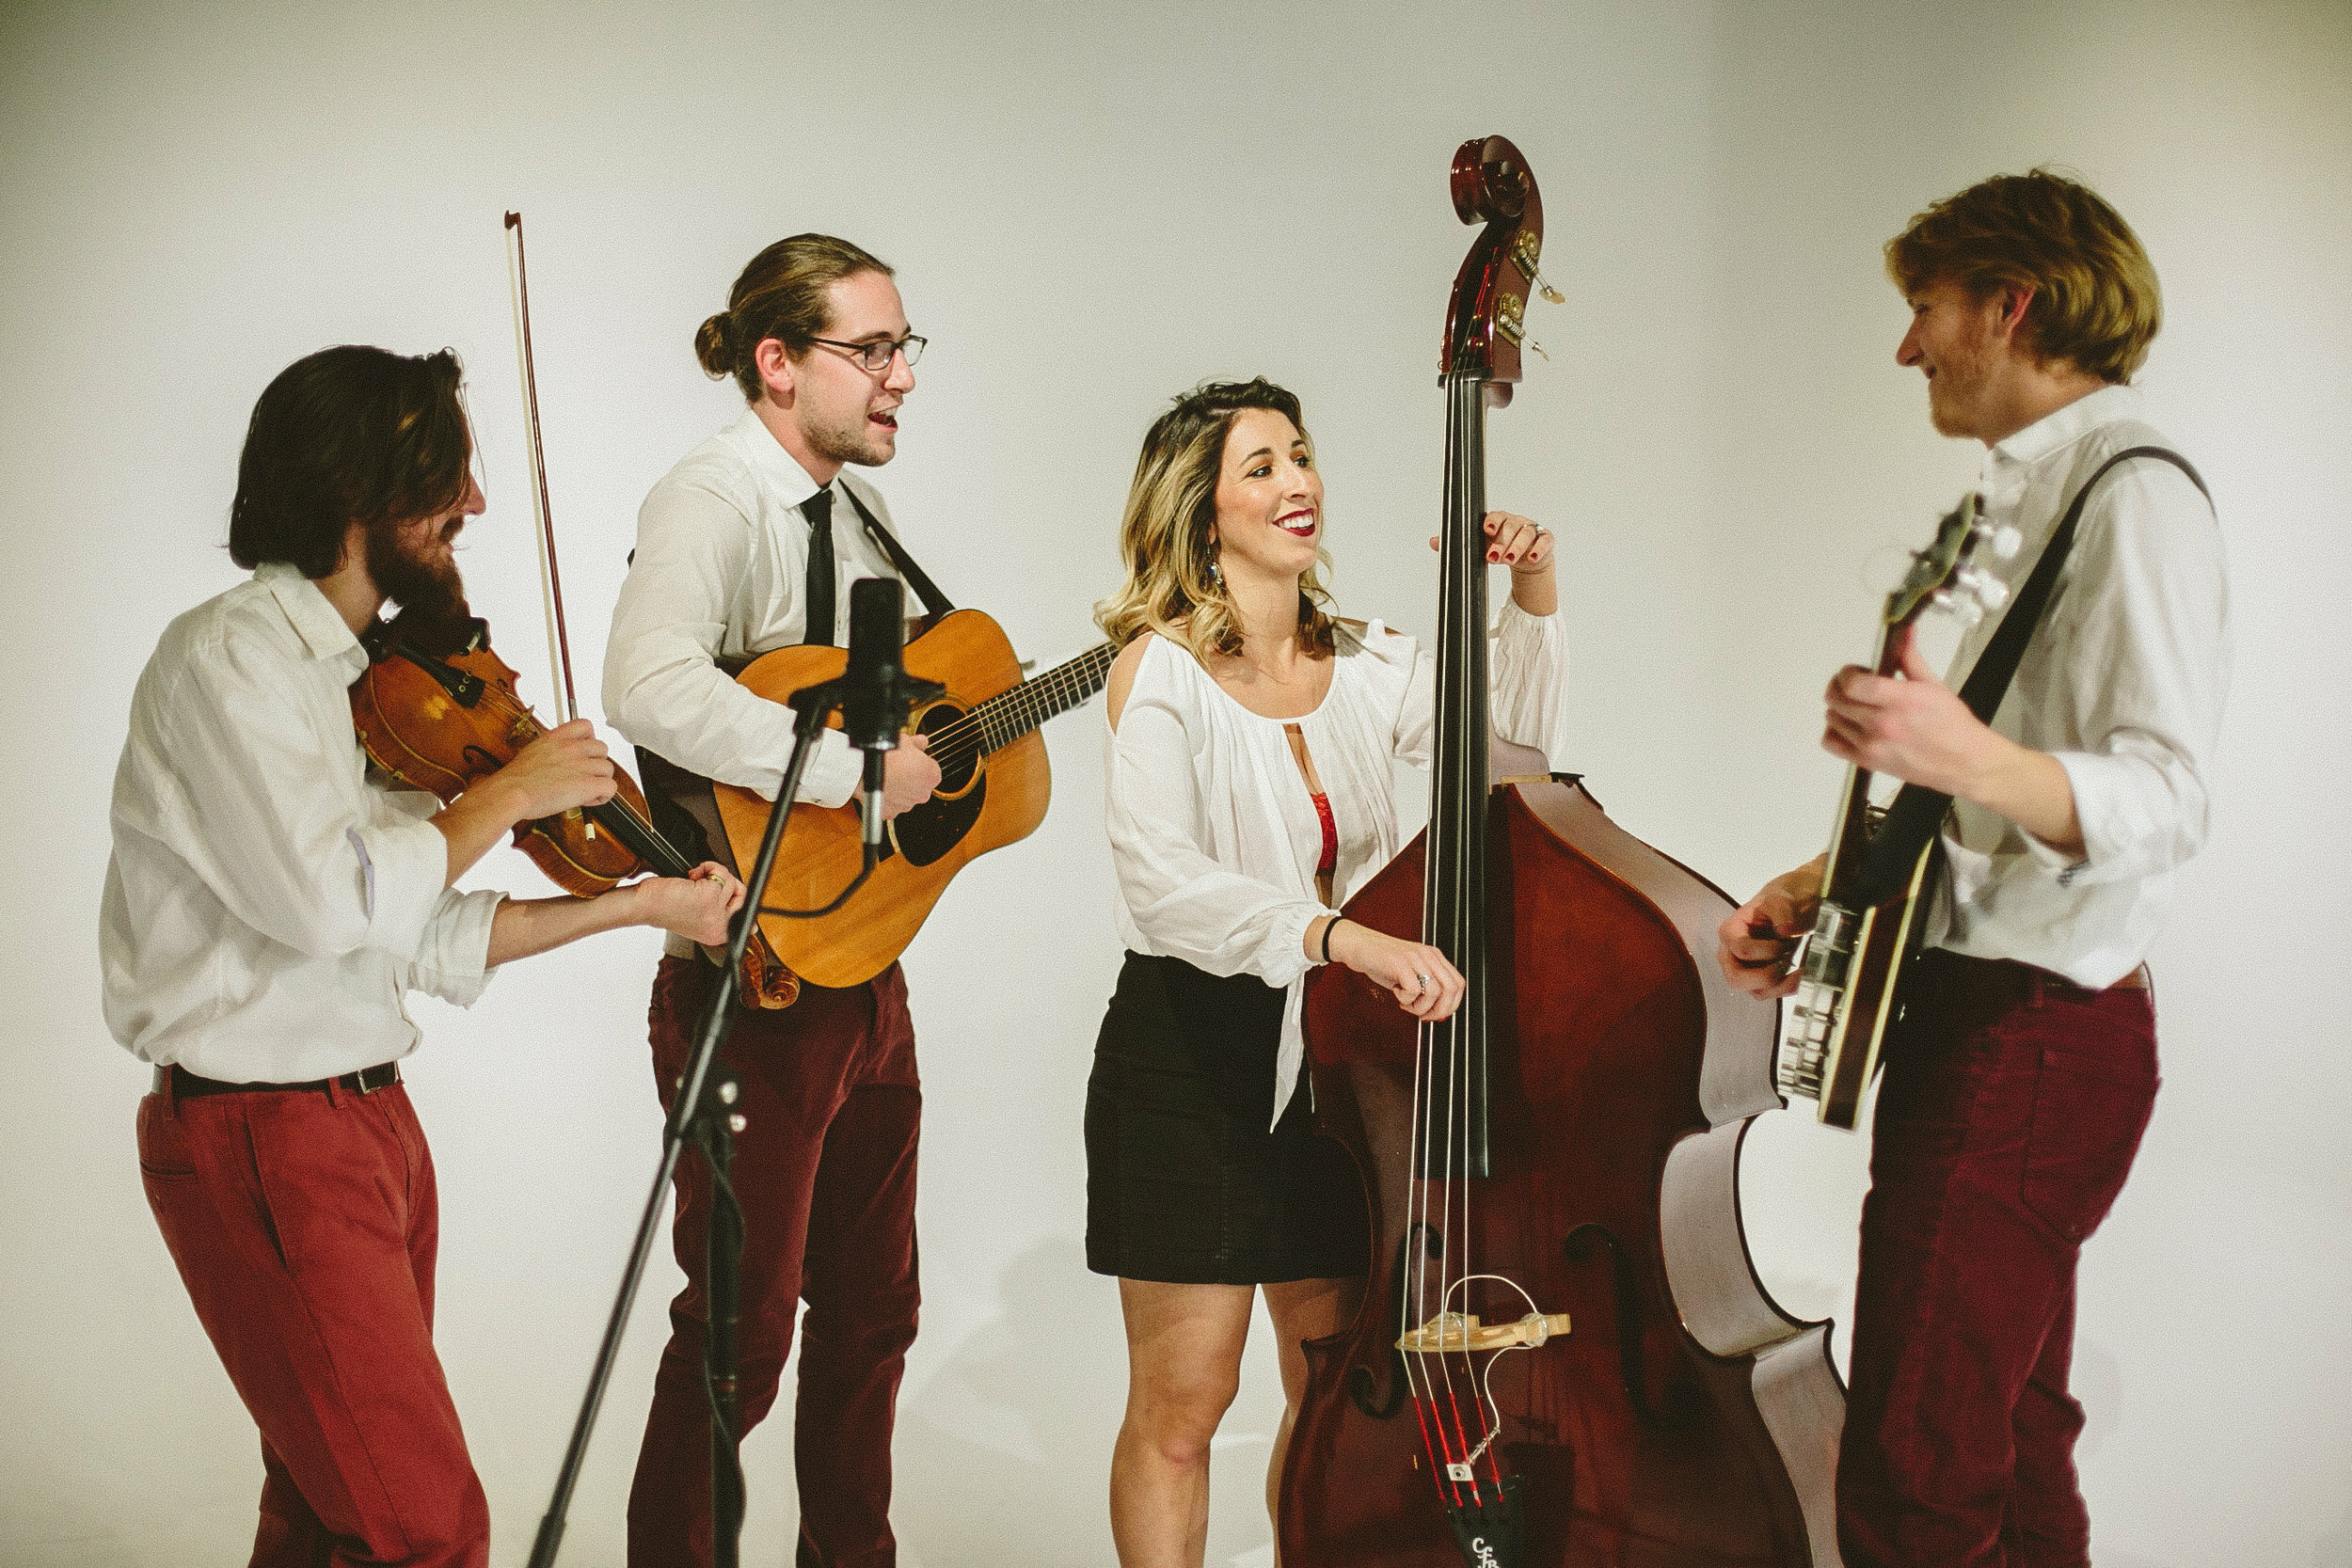 The bluegrass band Damn Tall Buildings will perform on Shelter Island as part of the Sylvester Manor music series.